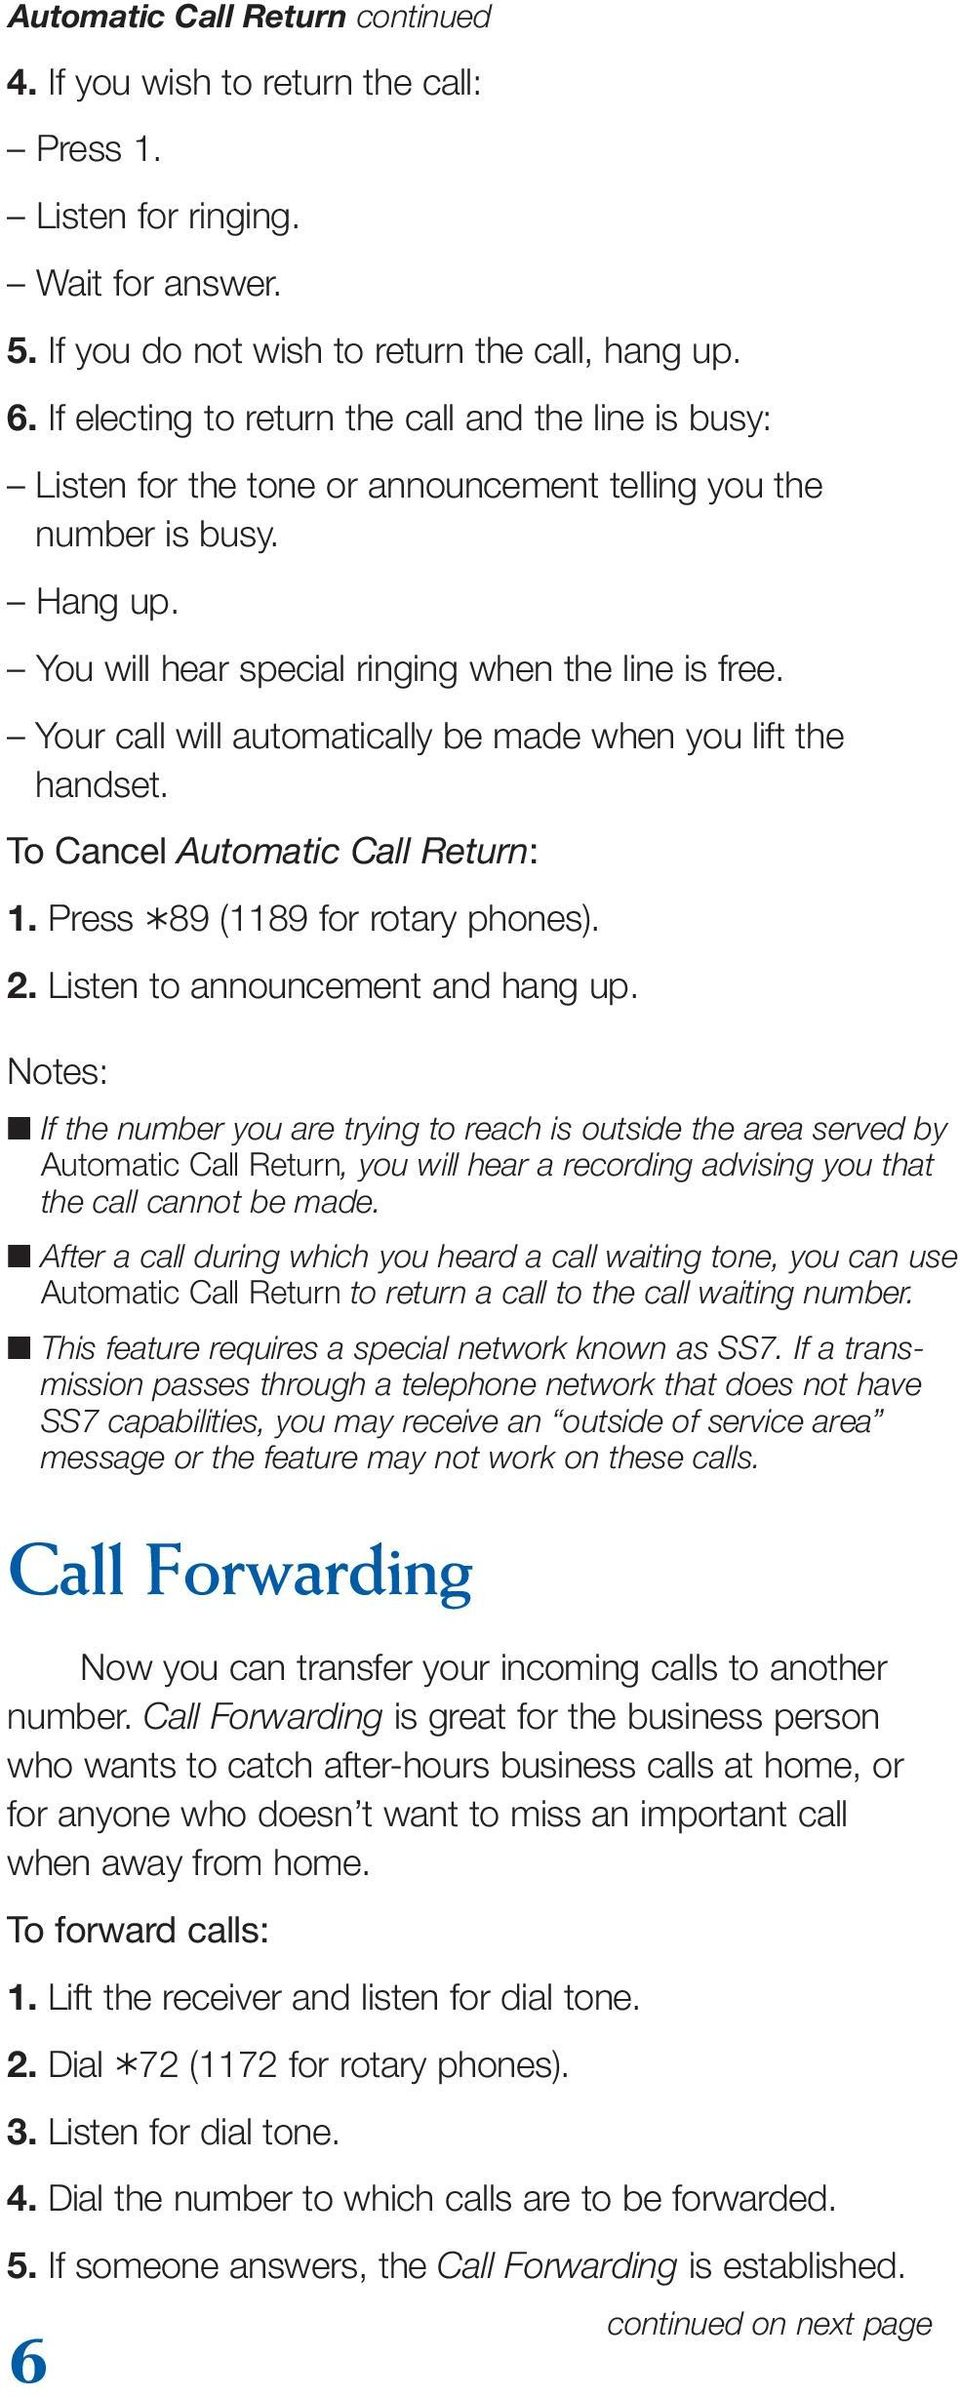 Your call will automatically be made when you lift the handset. To Cancel Automatic Call Return: 1. Press 89 (1189 for rotary phones). 2. Listen to announcement and hang up.